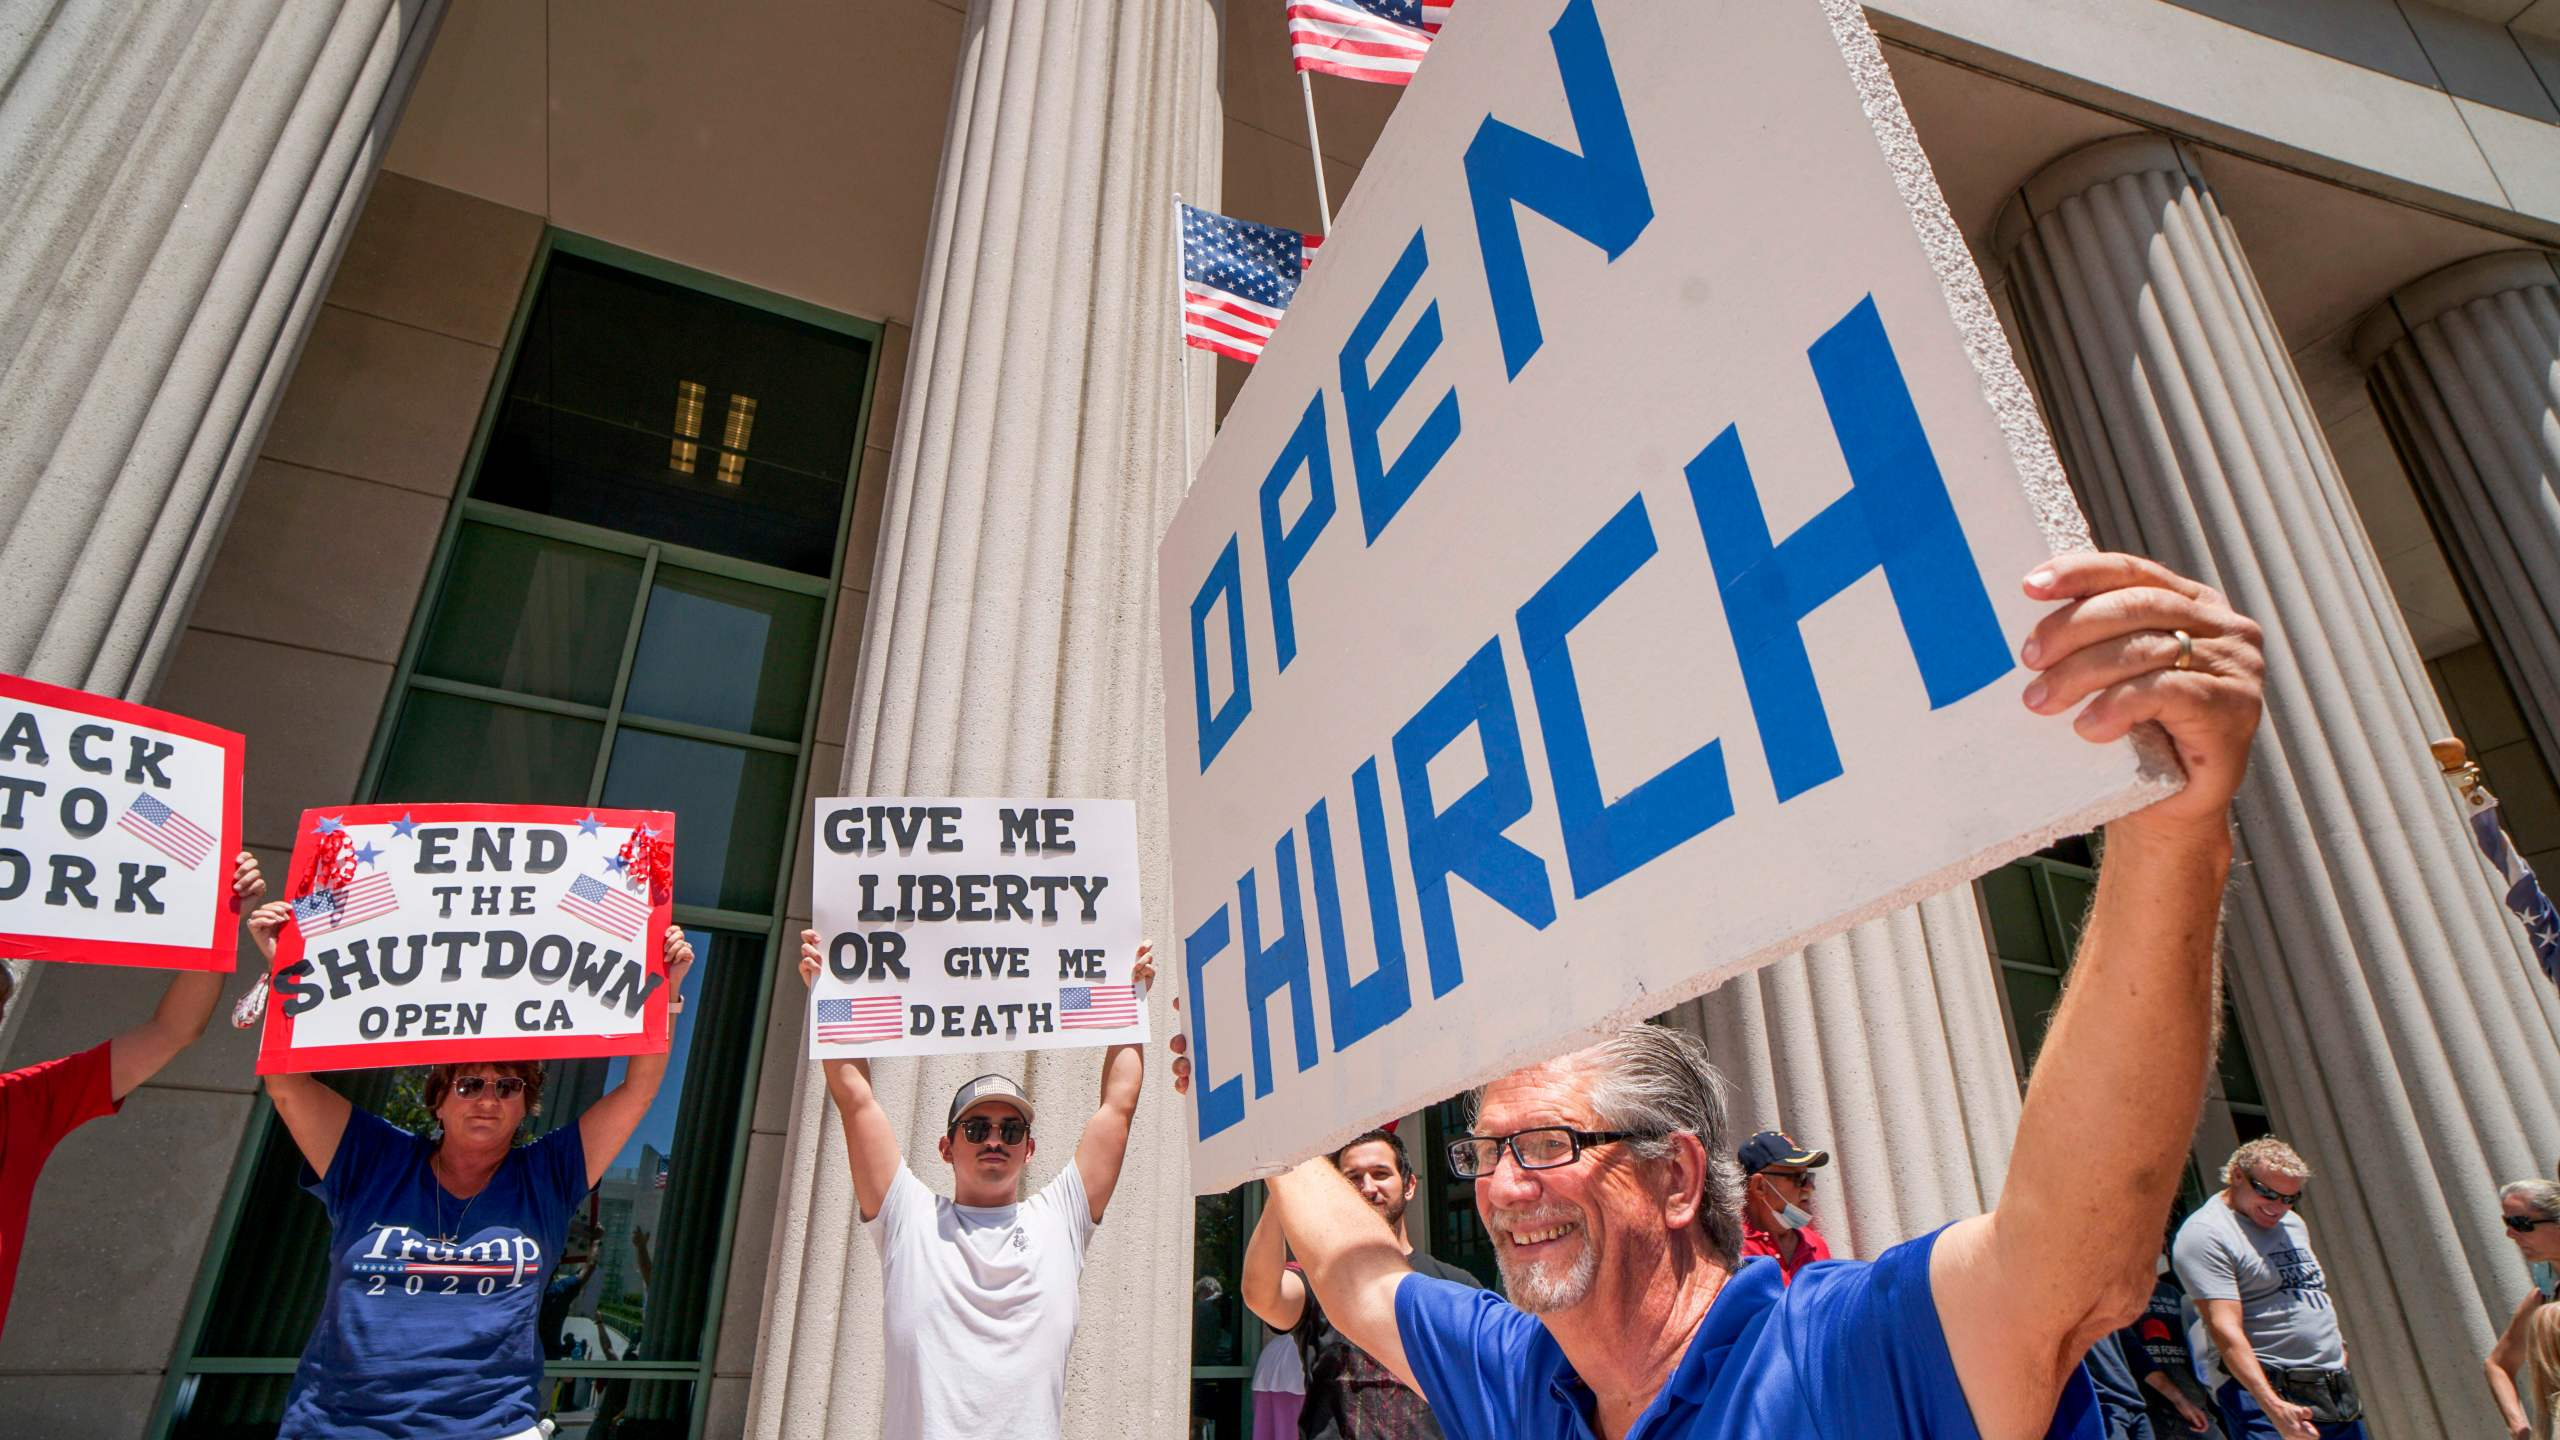 Demonstrators hold signs demanding their church to reopen during a rally against stay-home orders in San Diego on May 1, 2020. (Sandy Huffaker / AFP / Getty Images)